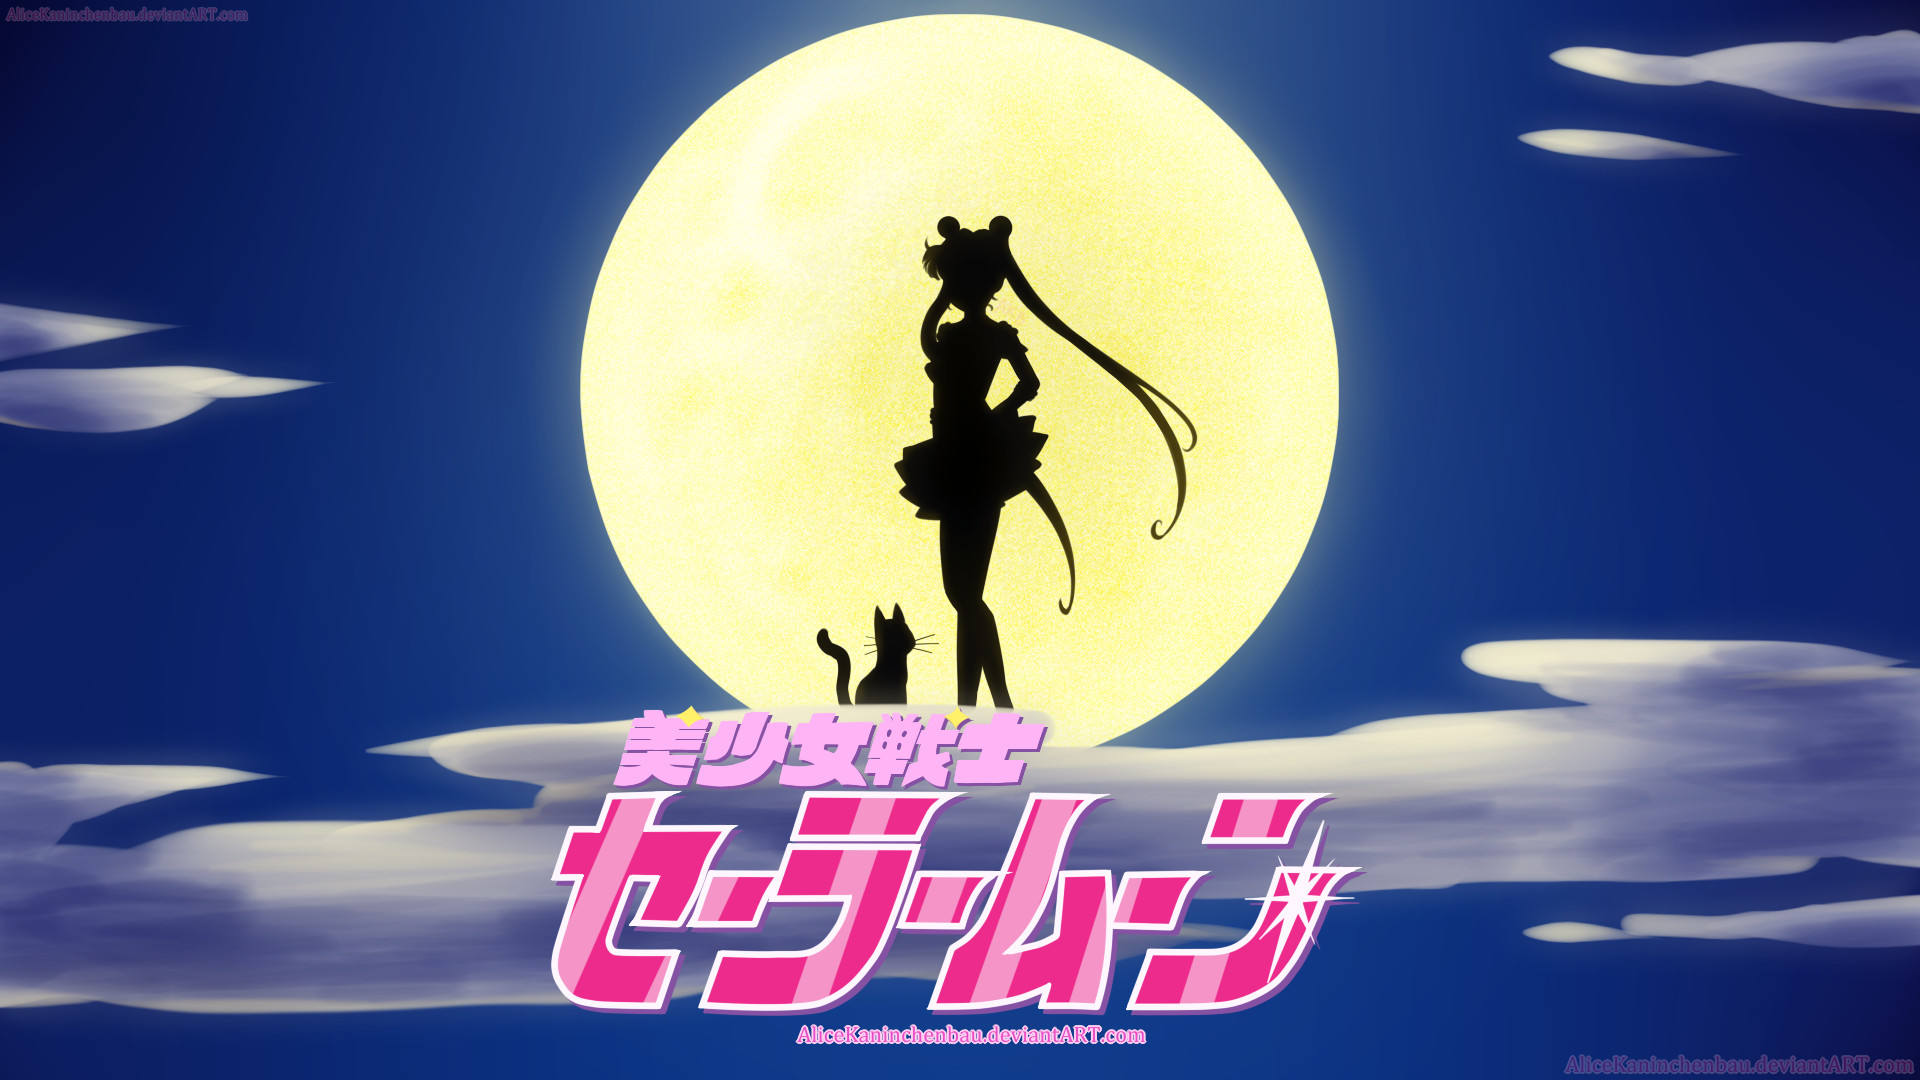 1920x1200 Sailor Moon 77 How To Set Wallpaper On Your Desktop Click The Download Link From Above And